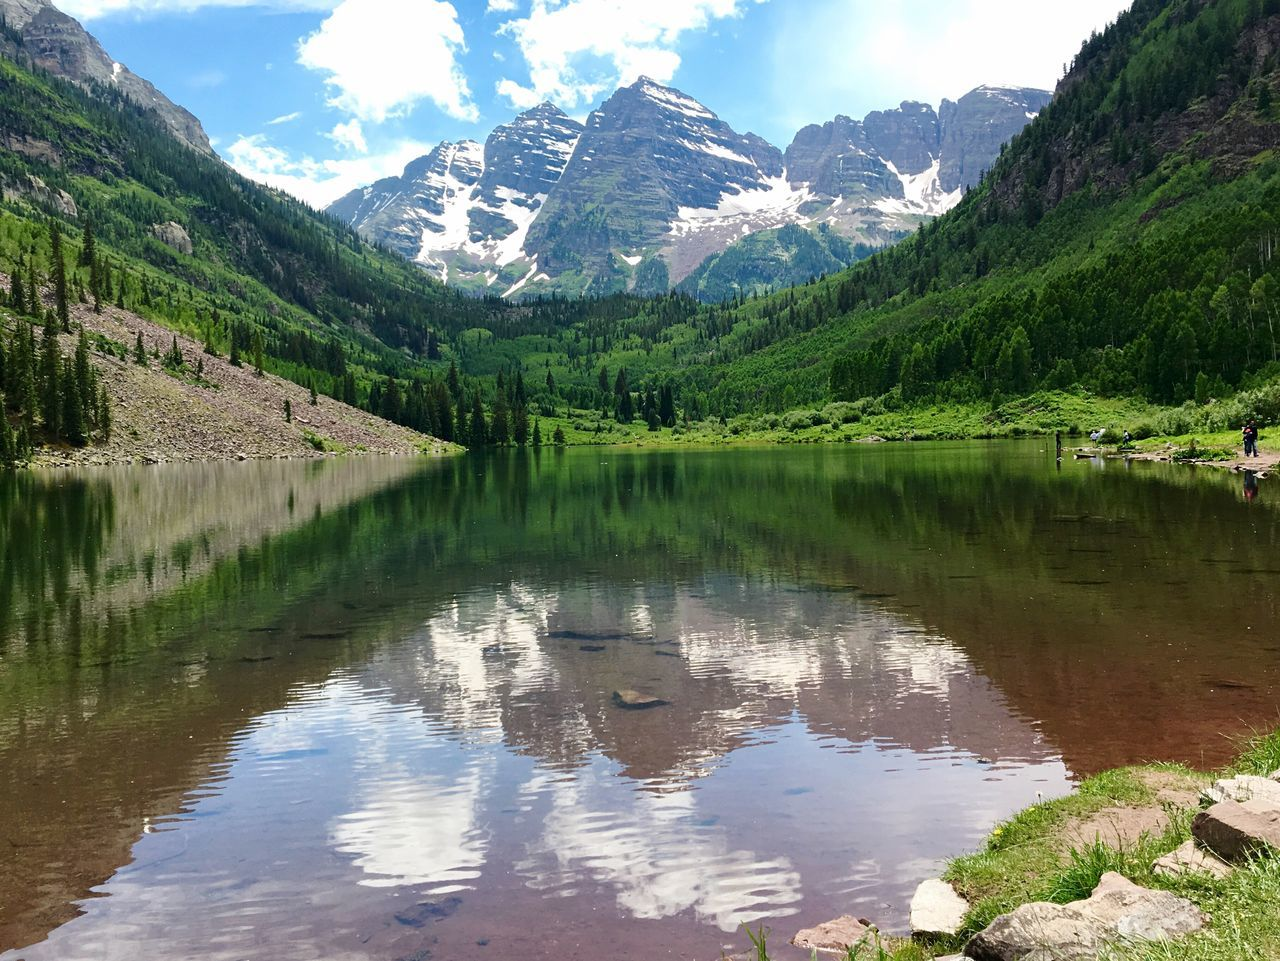 In awe of this unbelievable place. Nature Maroonbells Aspen Colorado Beautiful Beauty In Nature Aspen, Colorado The Great Outdoors - 2017 EyeEm Awards